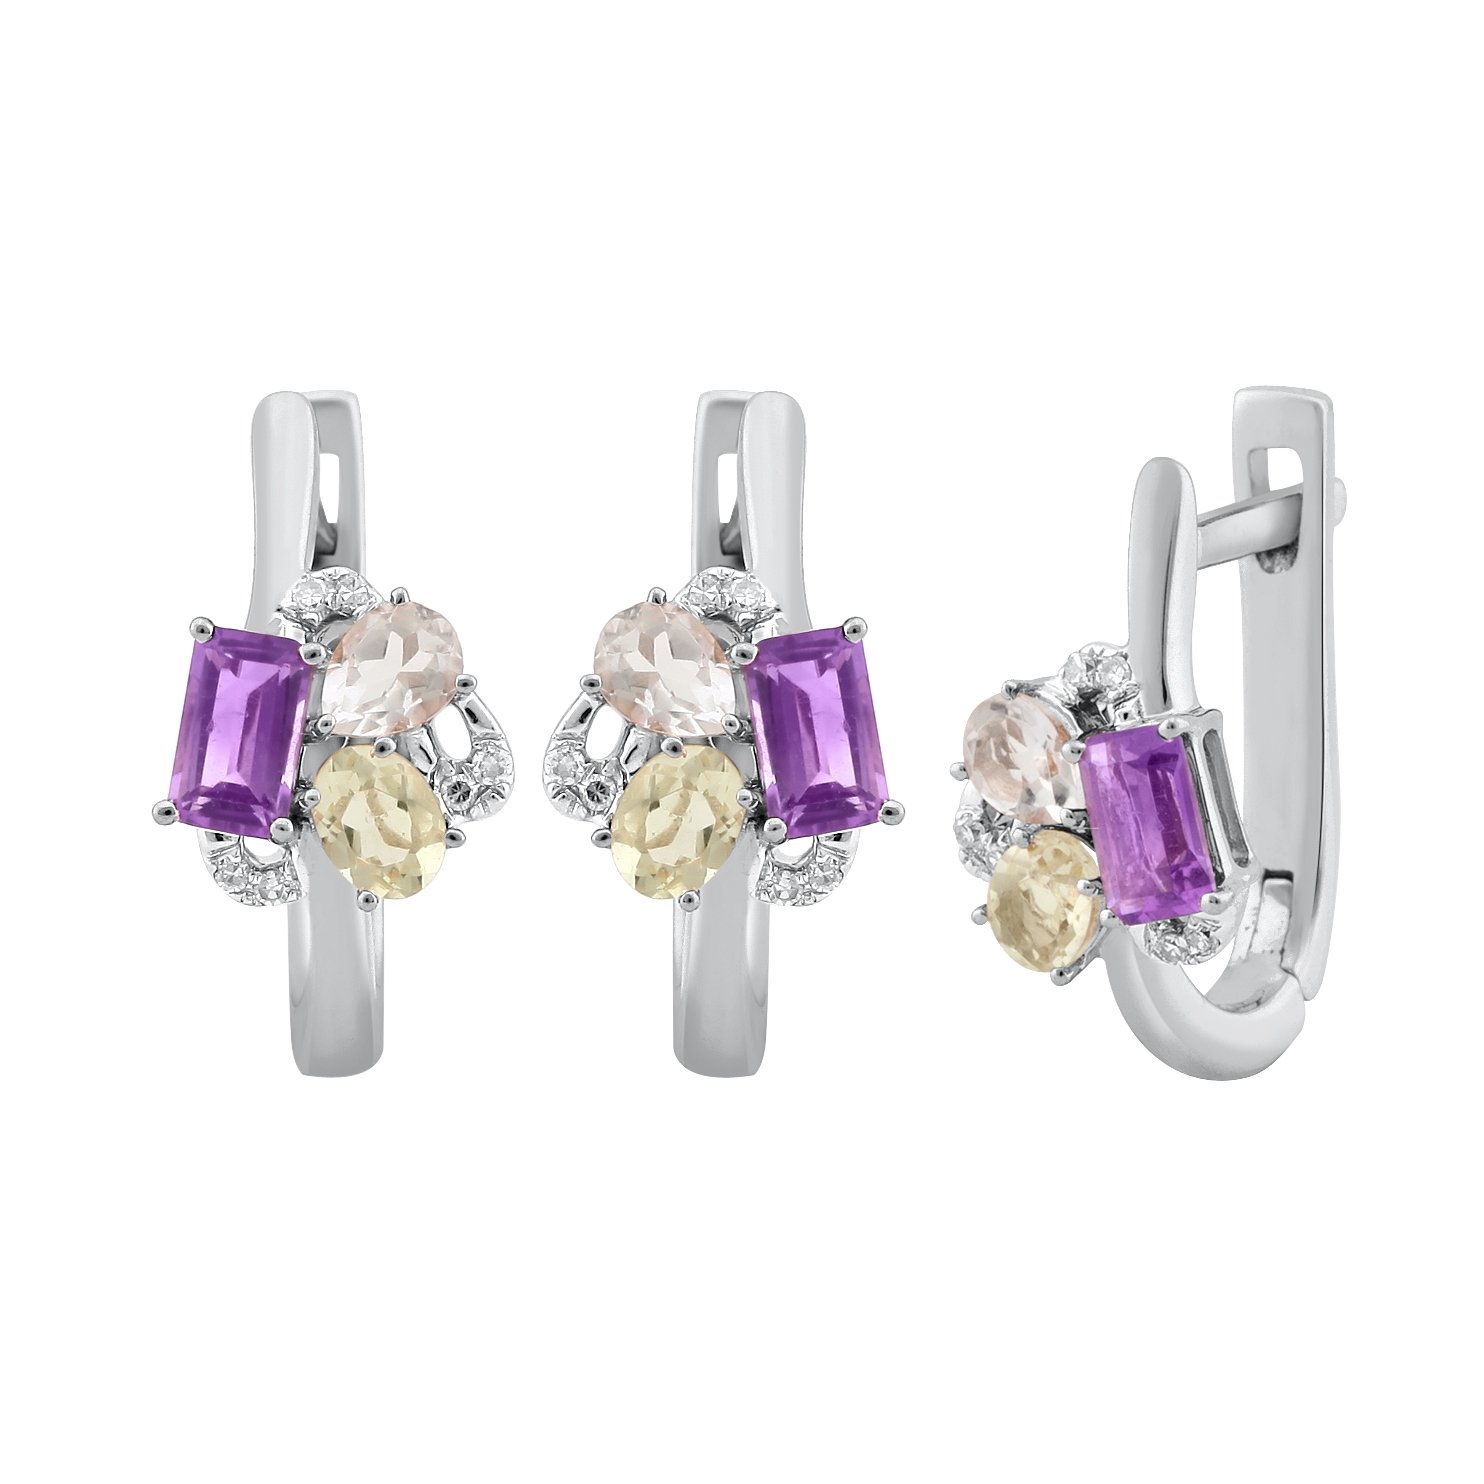 Jewel Ivy Fusion 14K White Gold Earring with Diamond, Amethyst and Lemon Quartz Fine Jewelry, Best For Gifting Wife, Girlfriend, Friend